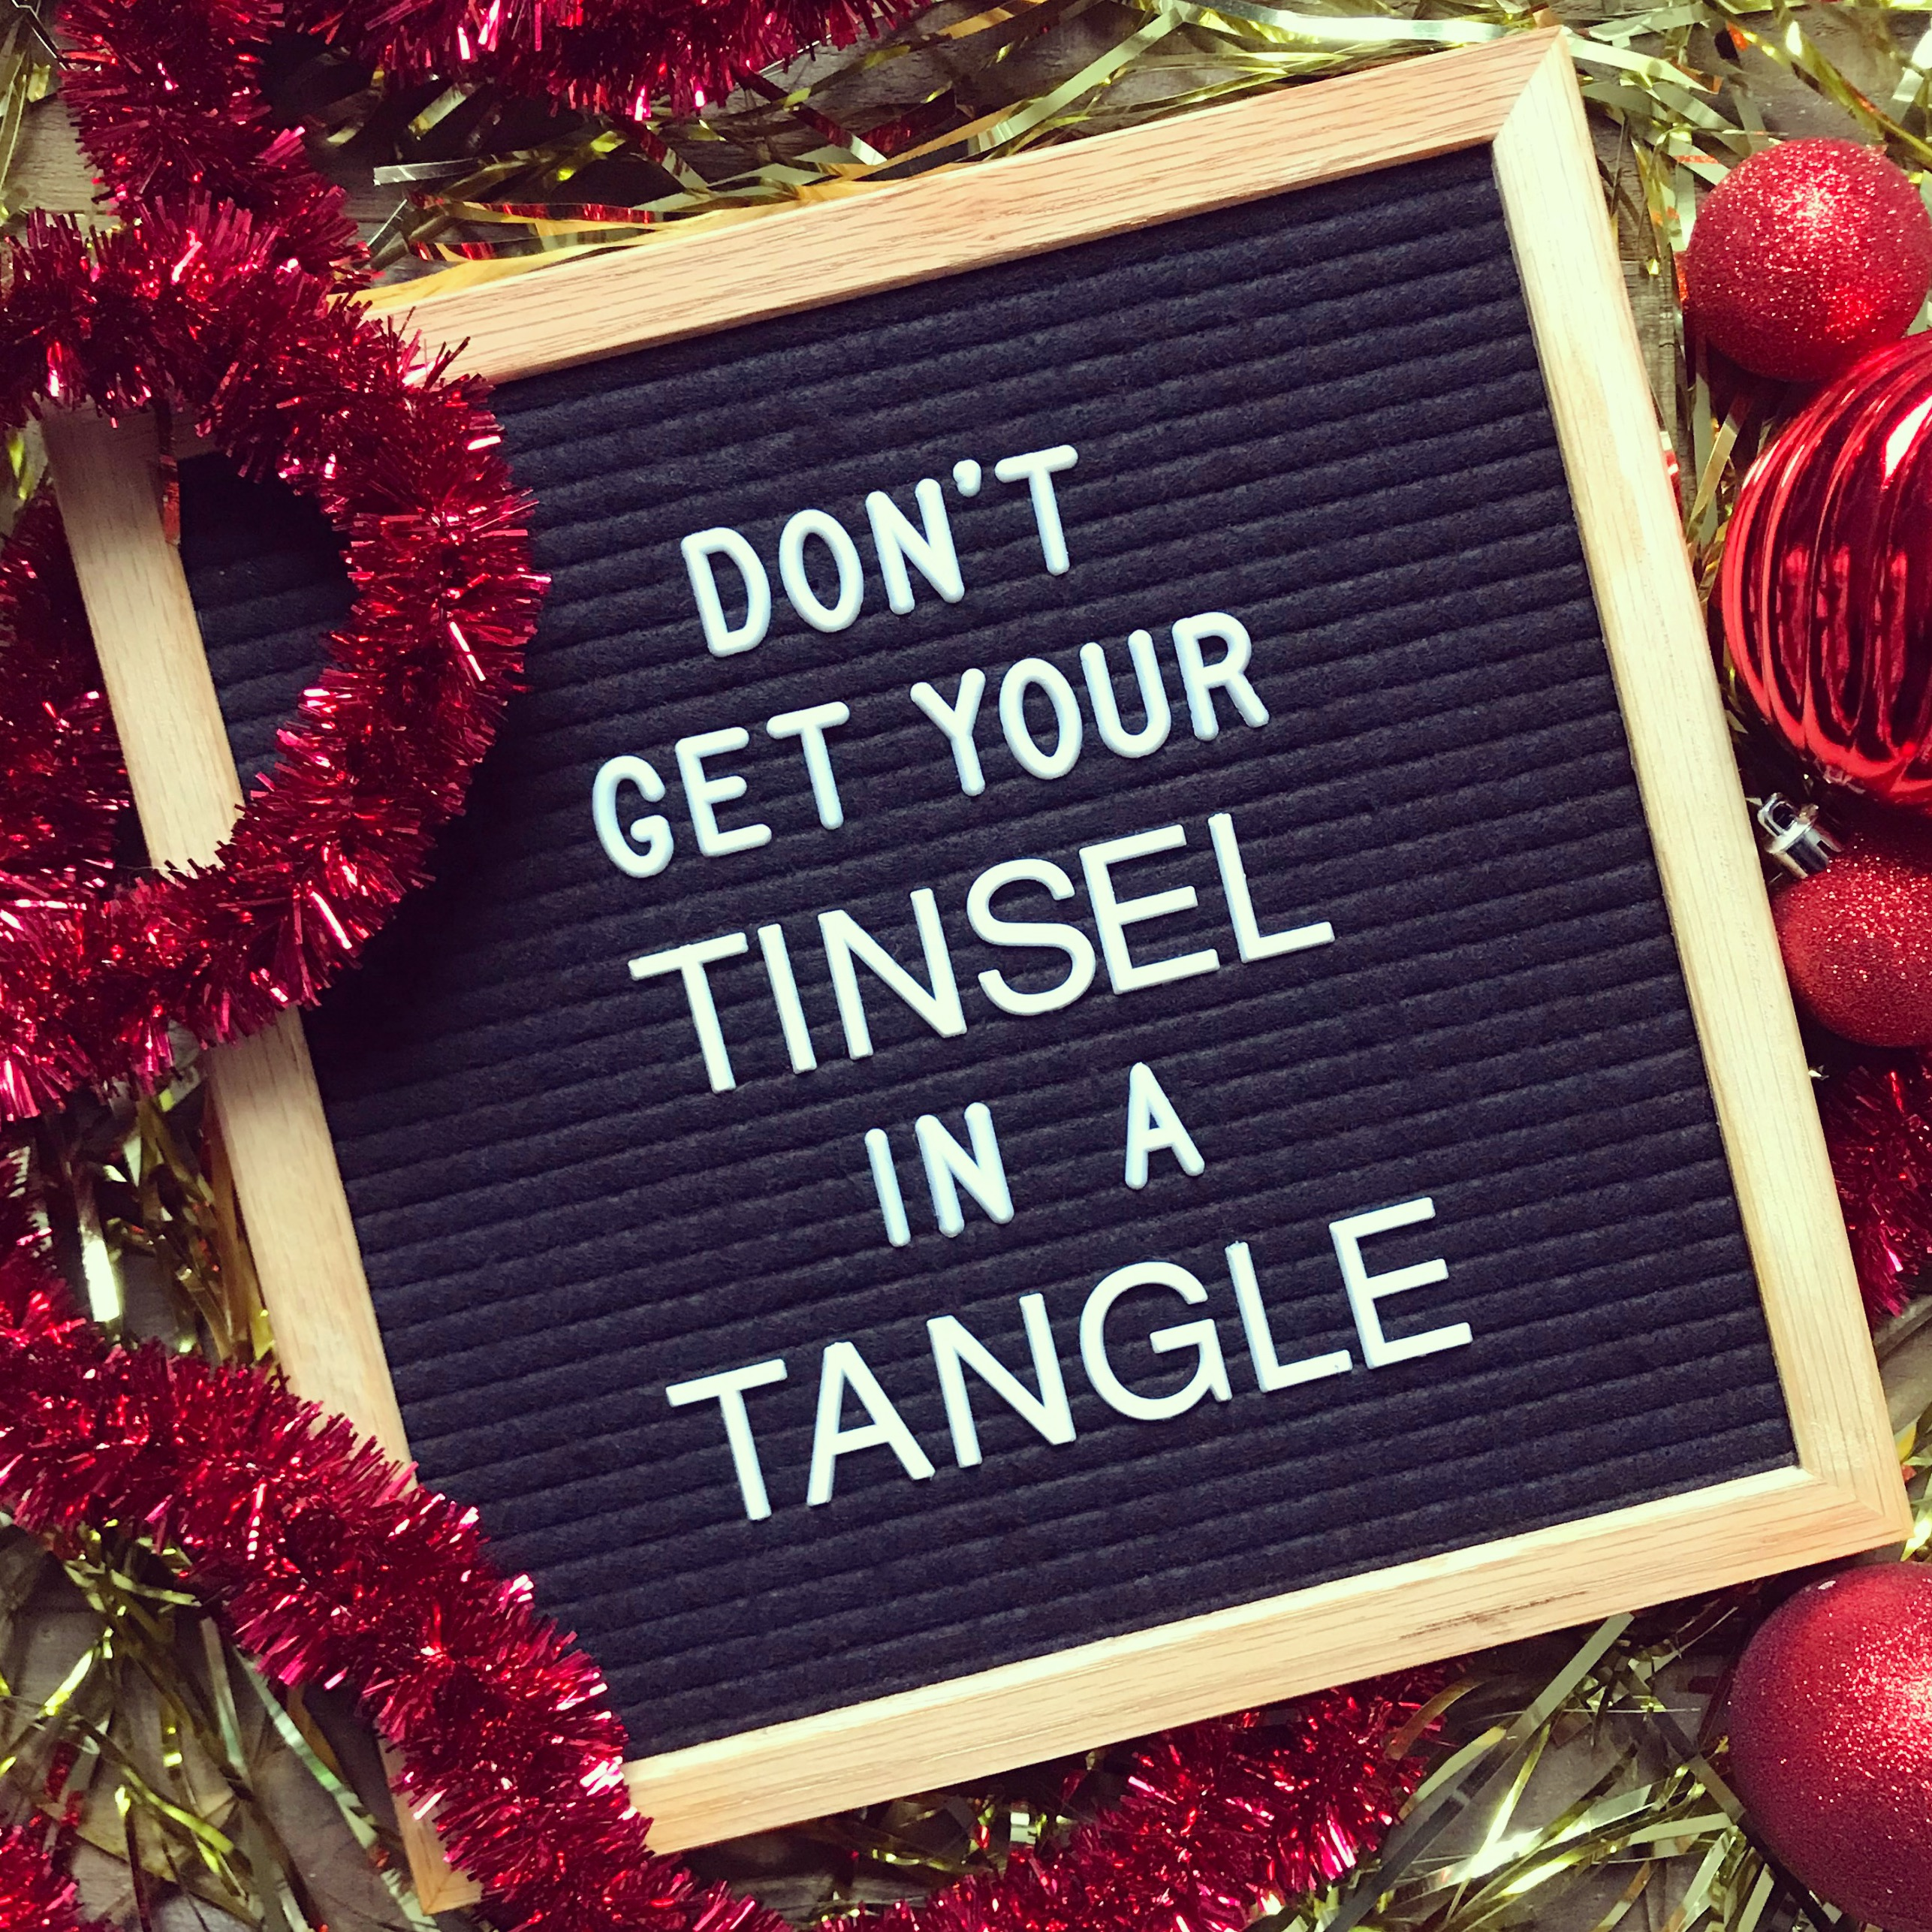 Don't Get Your Tinsel in a Tangle Letter Board